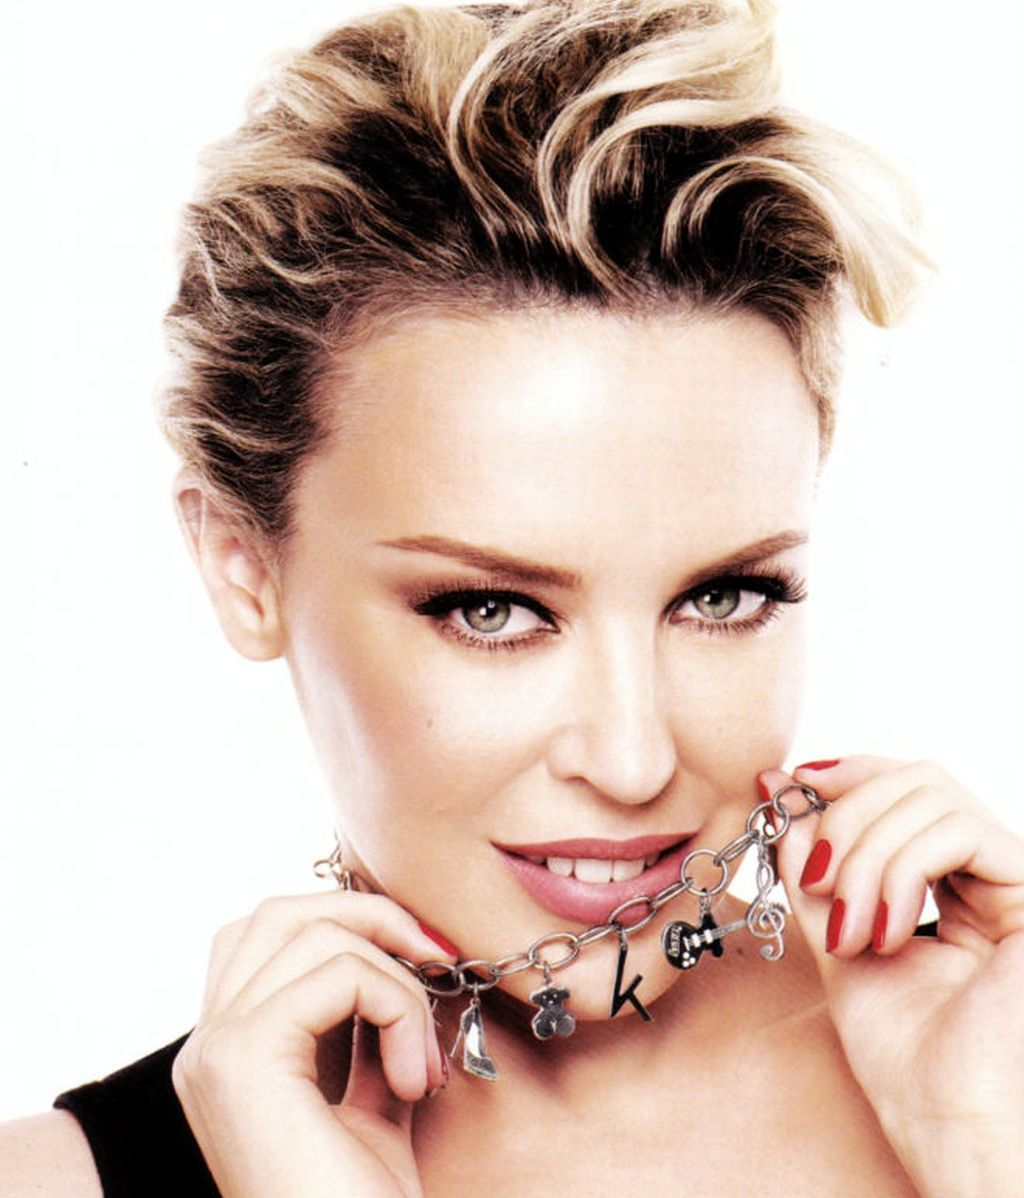 Kylie Minogue: 25 años de carrera, 25 looks